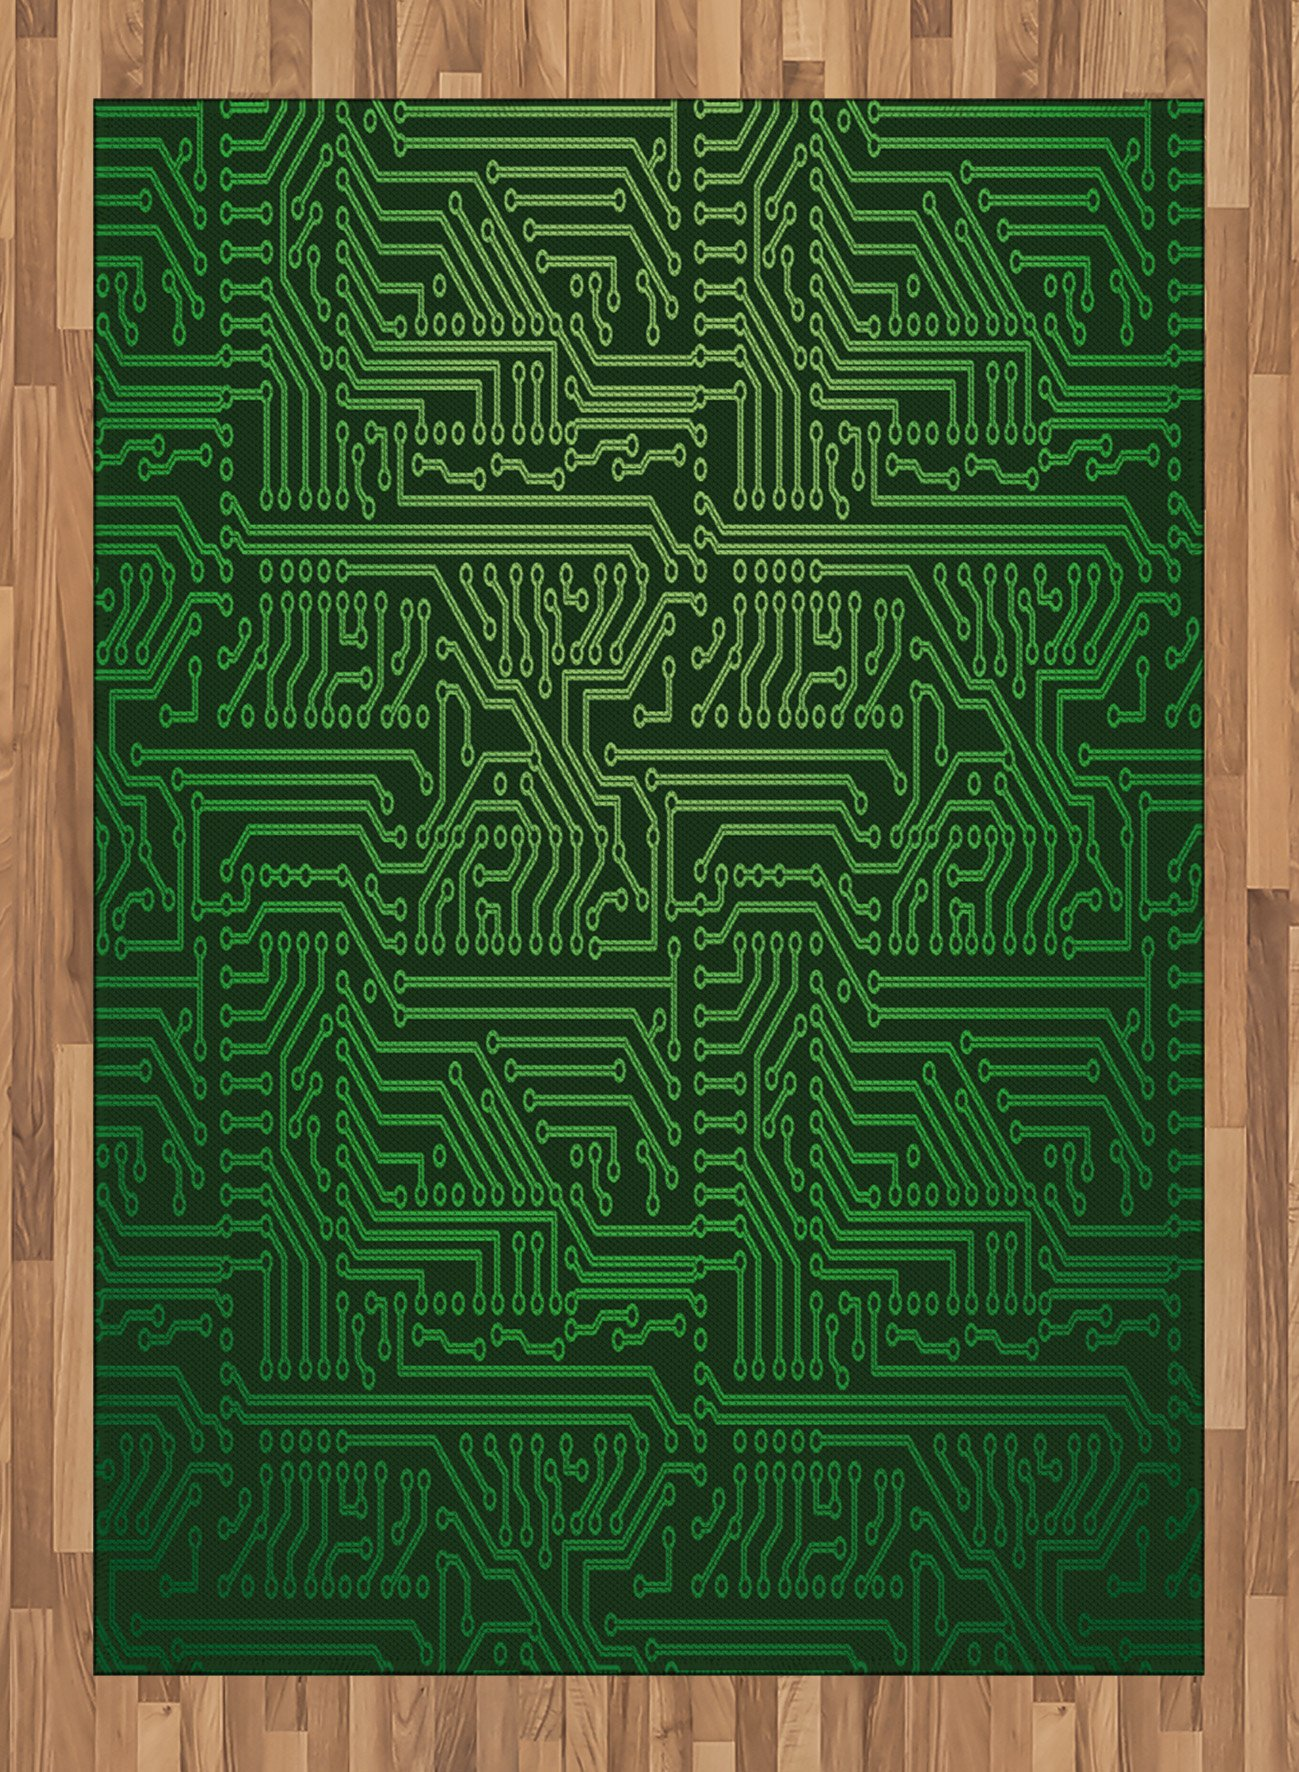 Digital Area Rug by Lunarable, Computer Art Backdrop with Circuit Board Diagram Hardware Wire Illustration, Flat Woven Accent Rug for Living Room Bedroom Dining Room, 5.2 x 7.5 FT, Emerald Fern Green